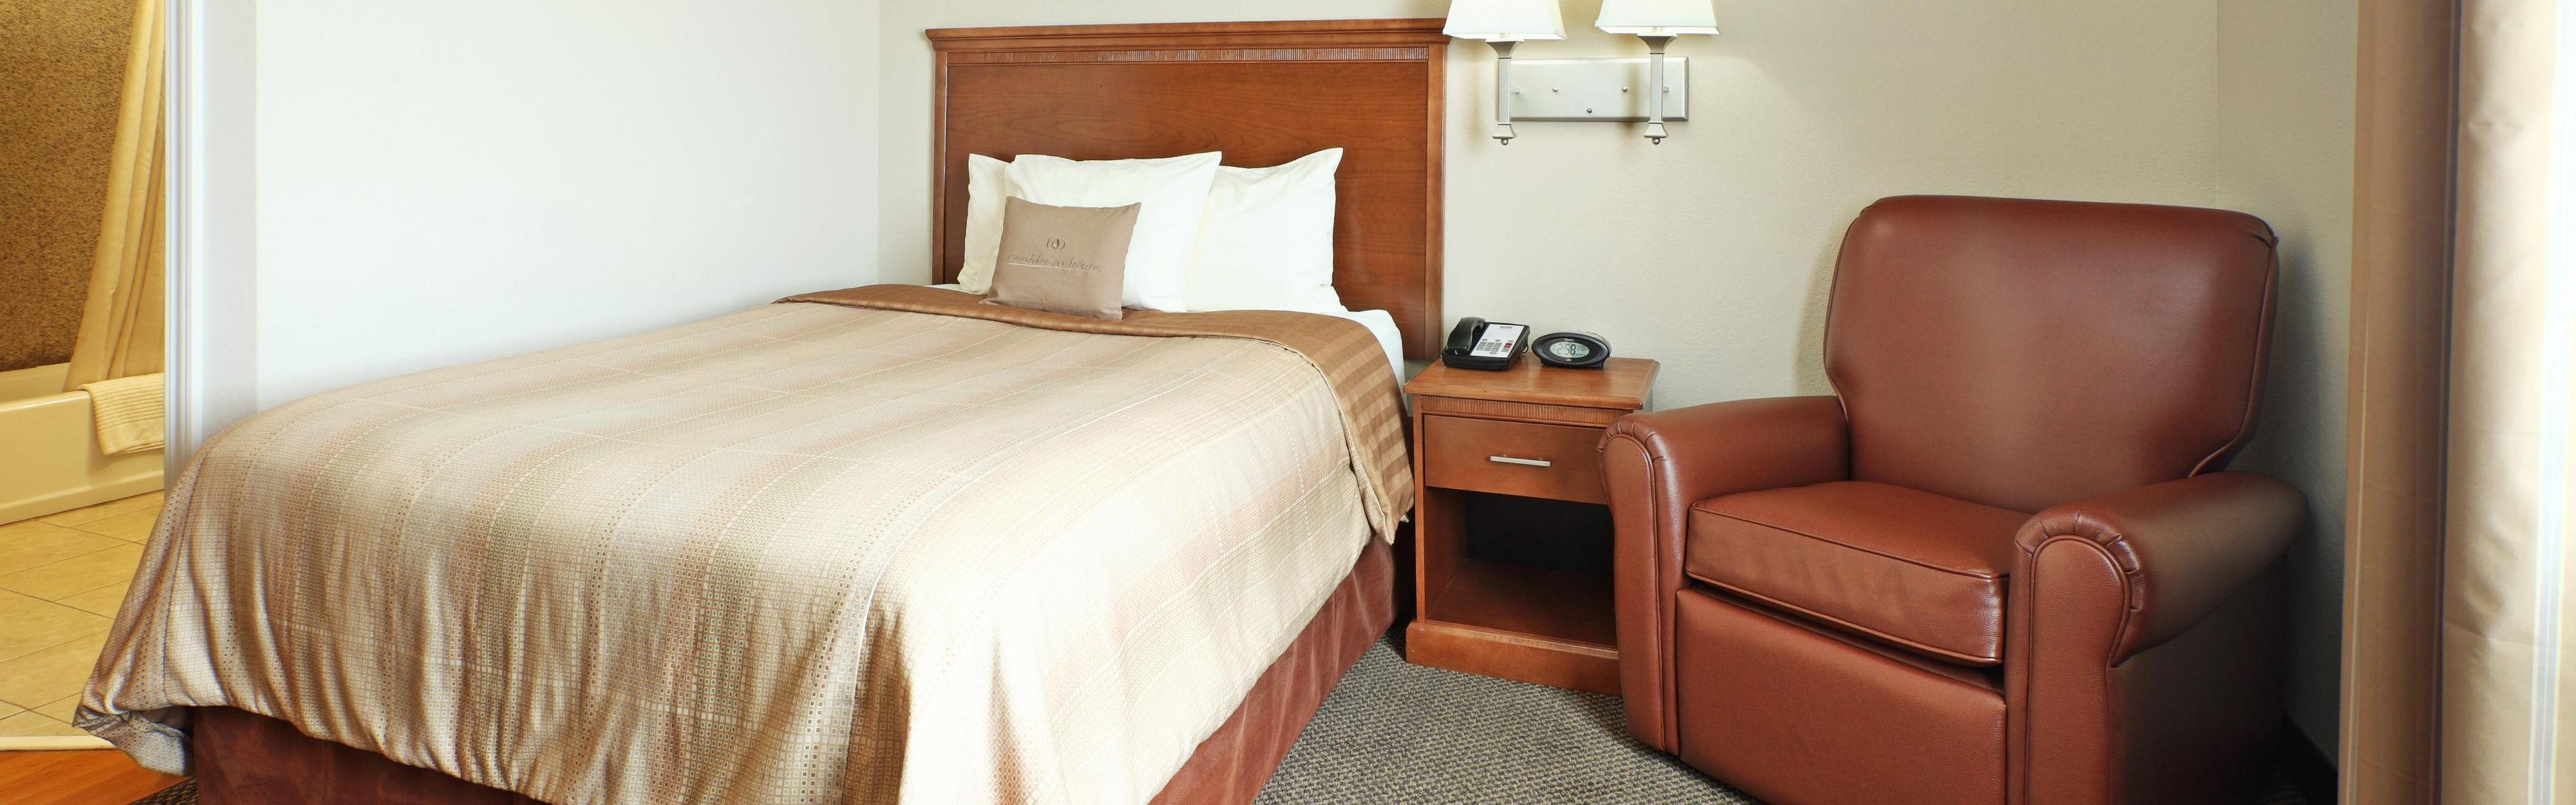 Candlewood Suites Fort Smith image 1